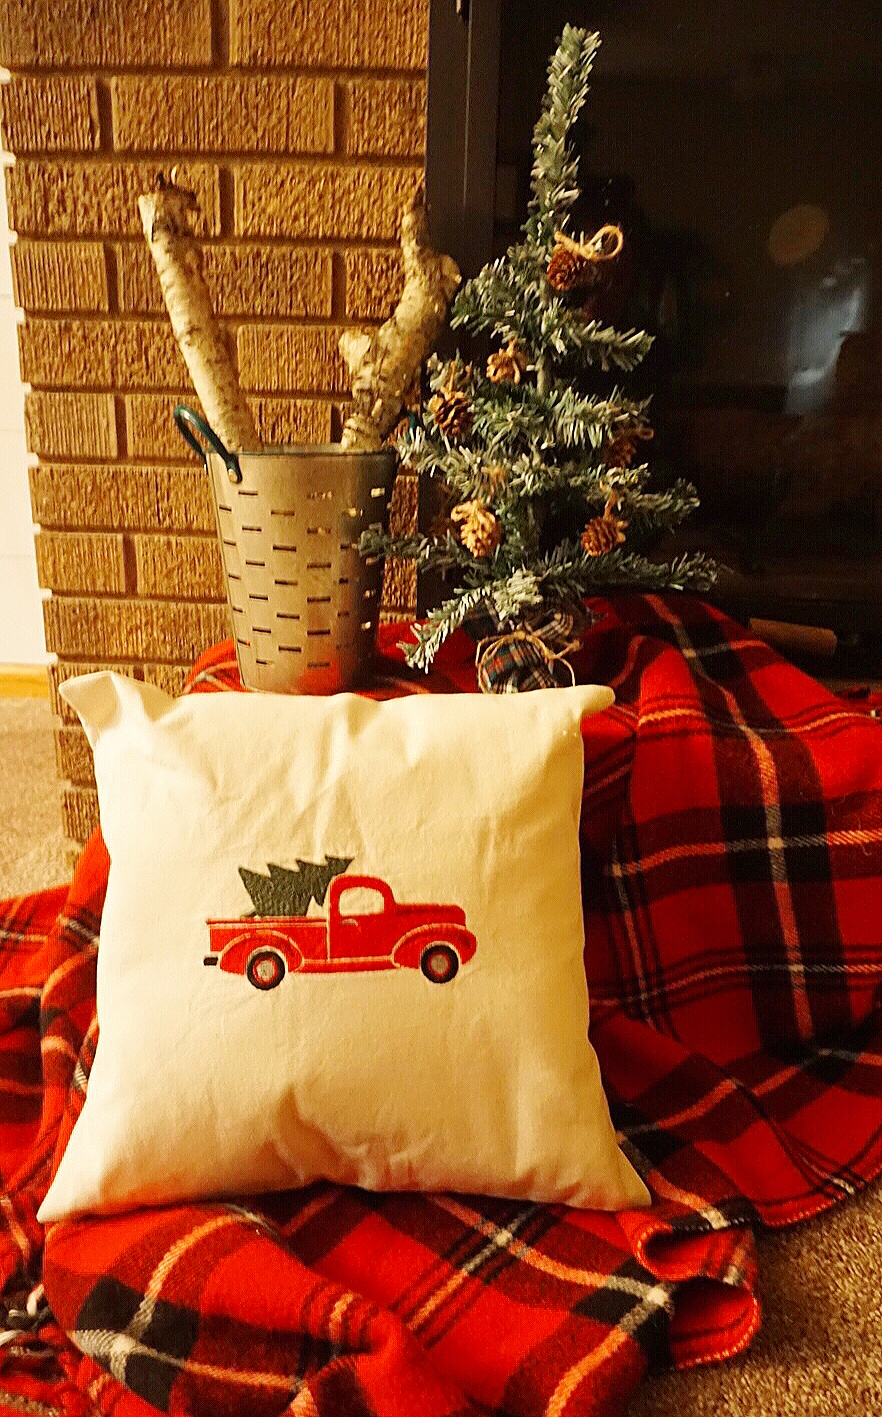 Who doesn't love the red truck for Christmas decor?